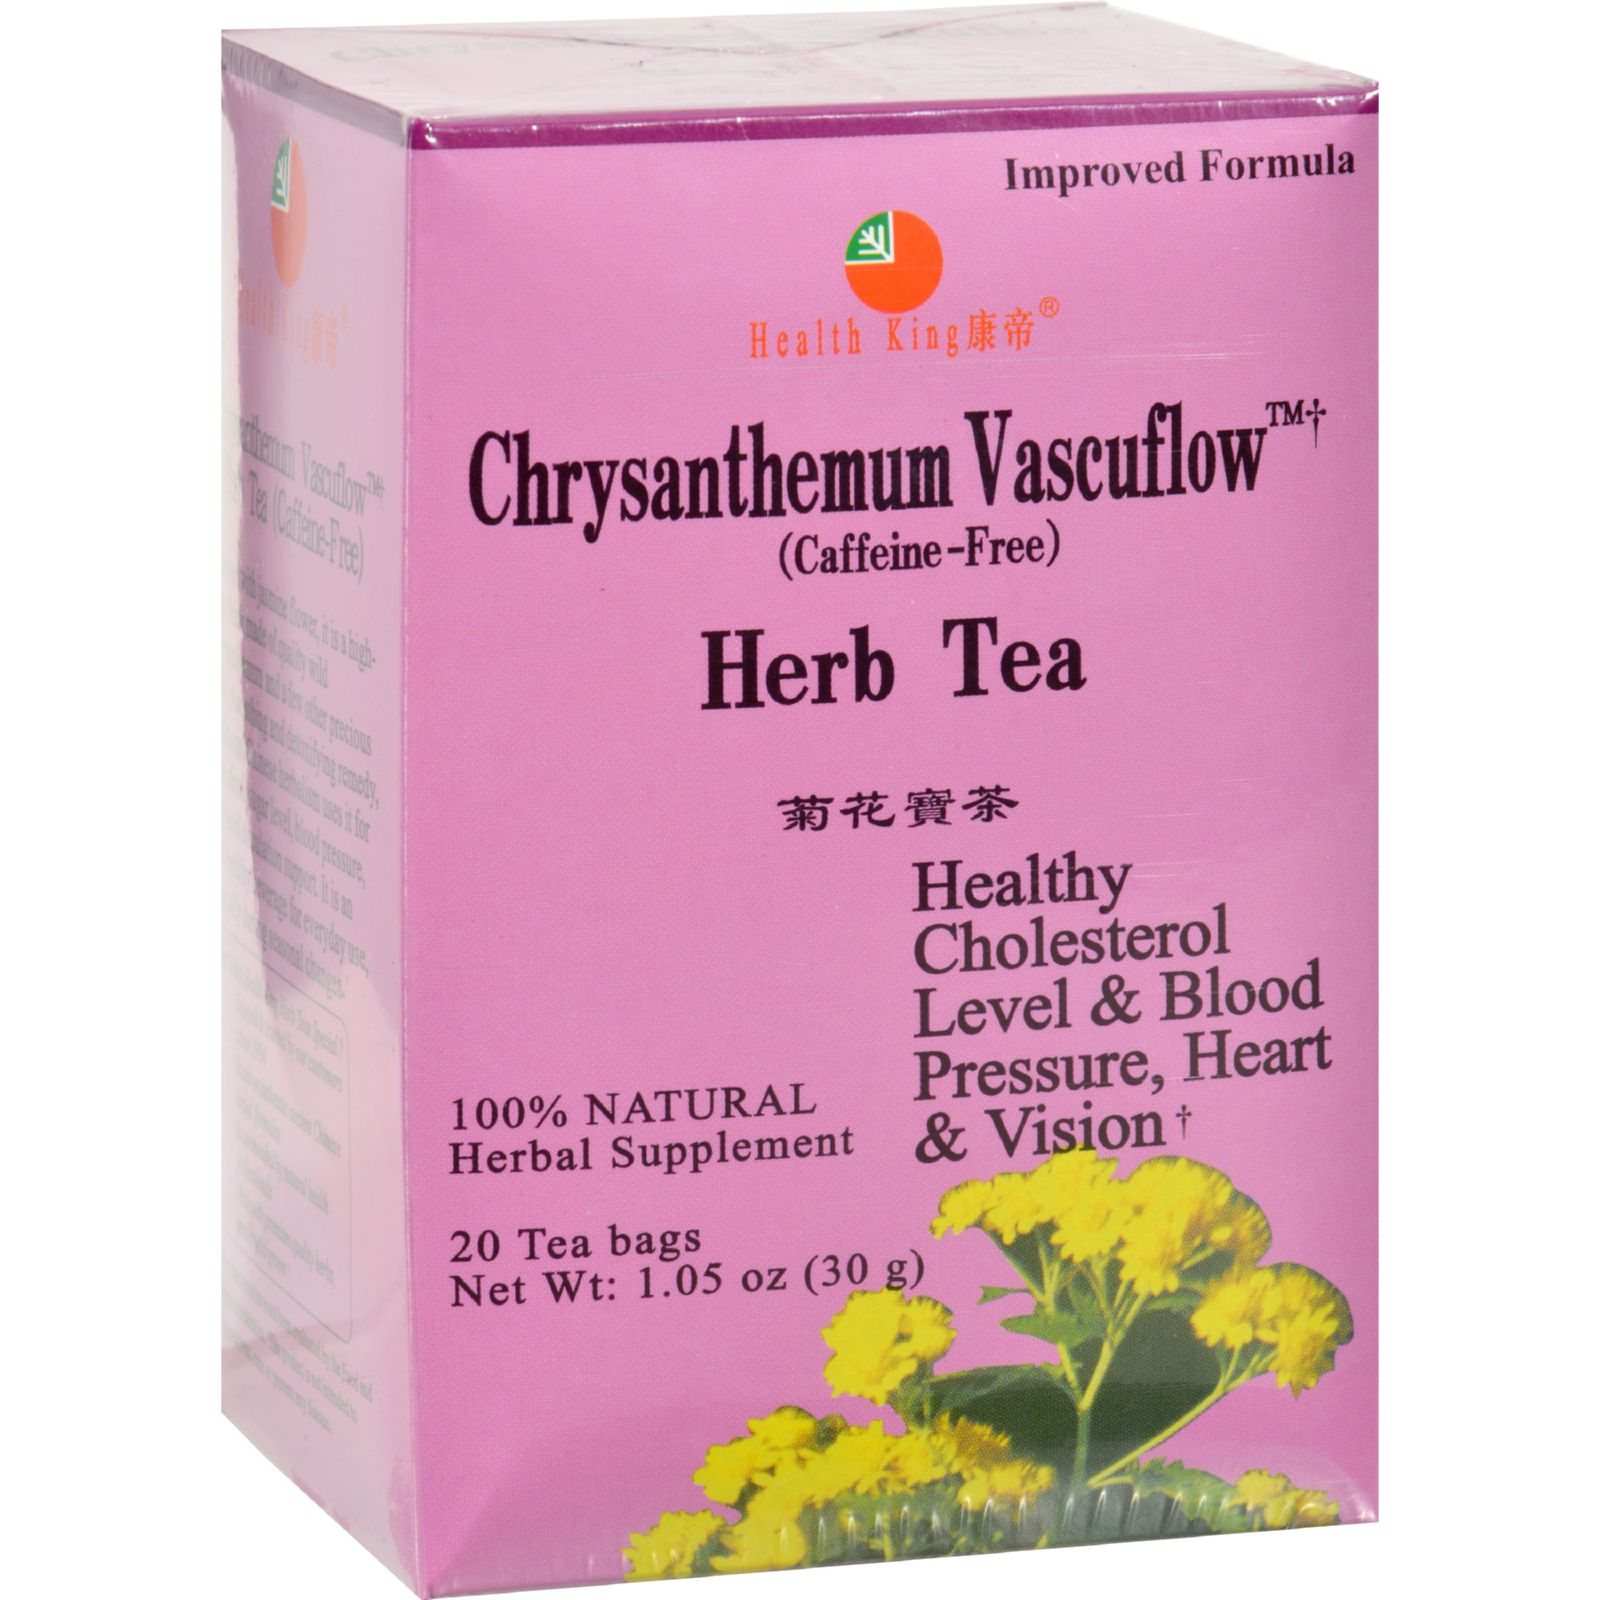 Health King Chrysanthemum Vascuflow Herb Tea 20 Tea Bags